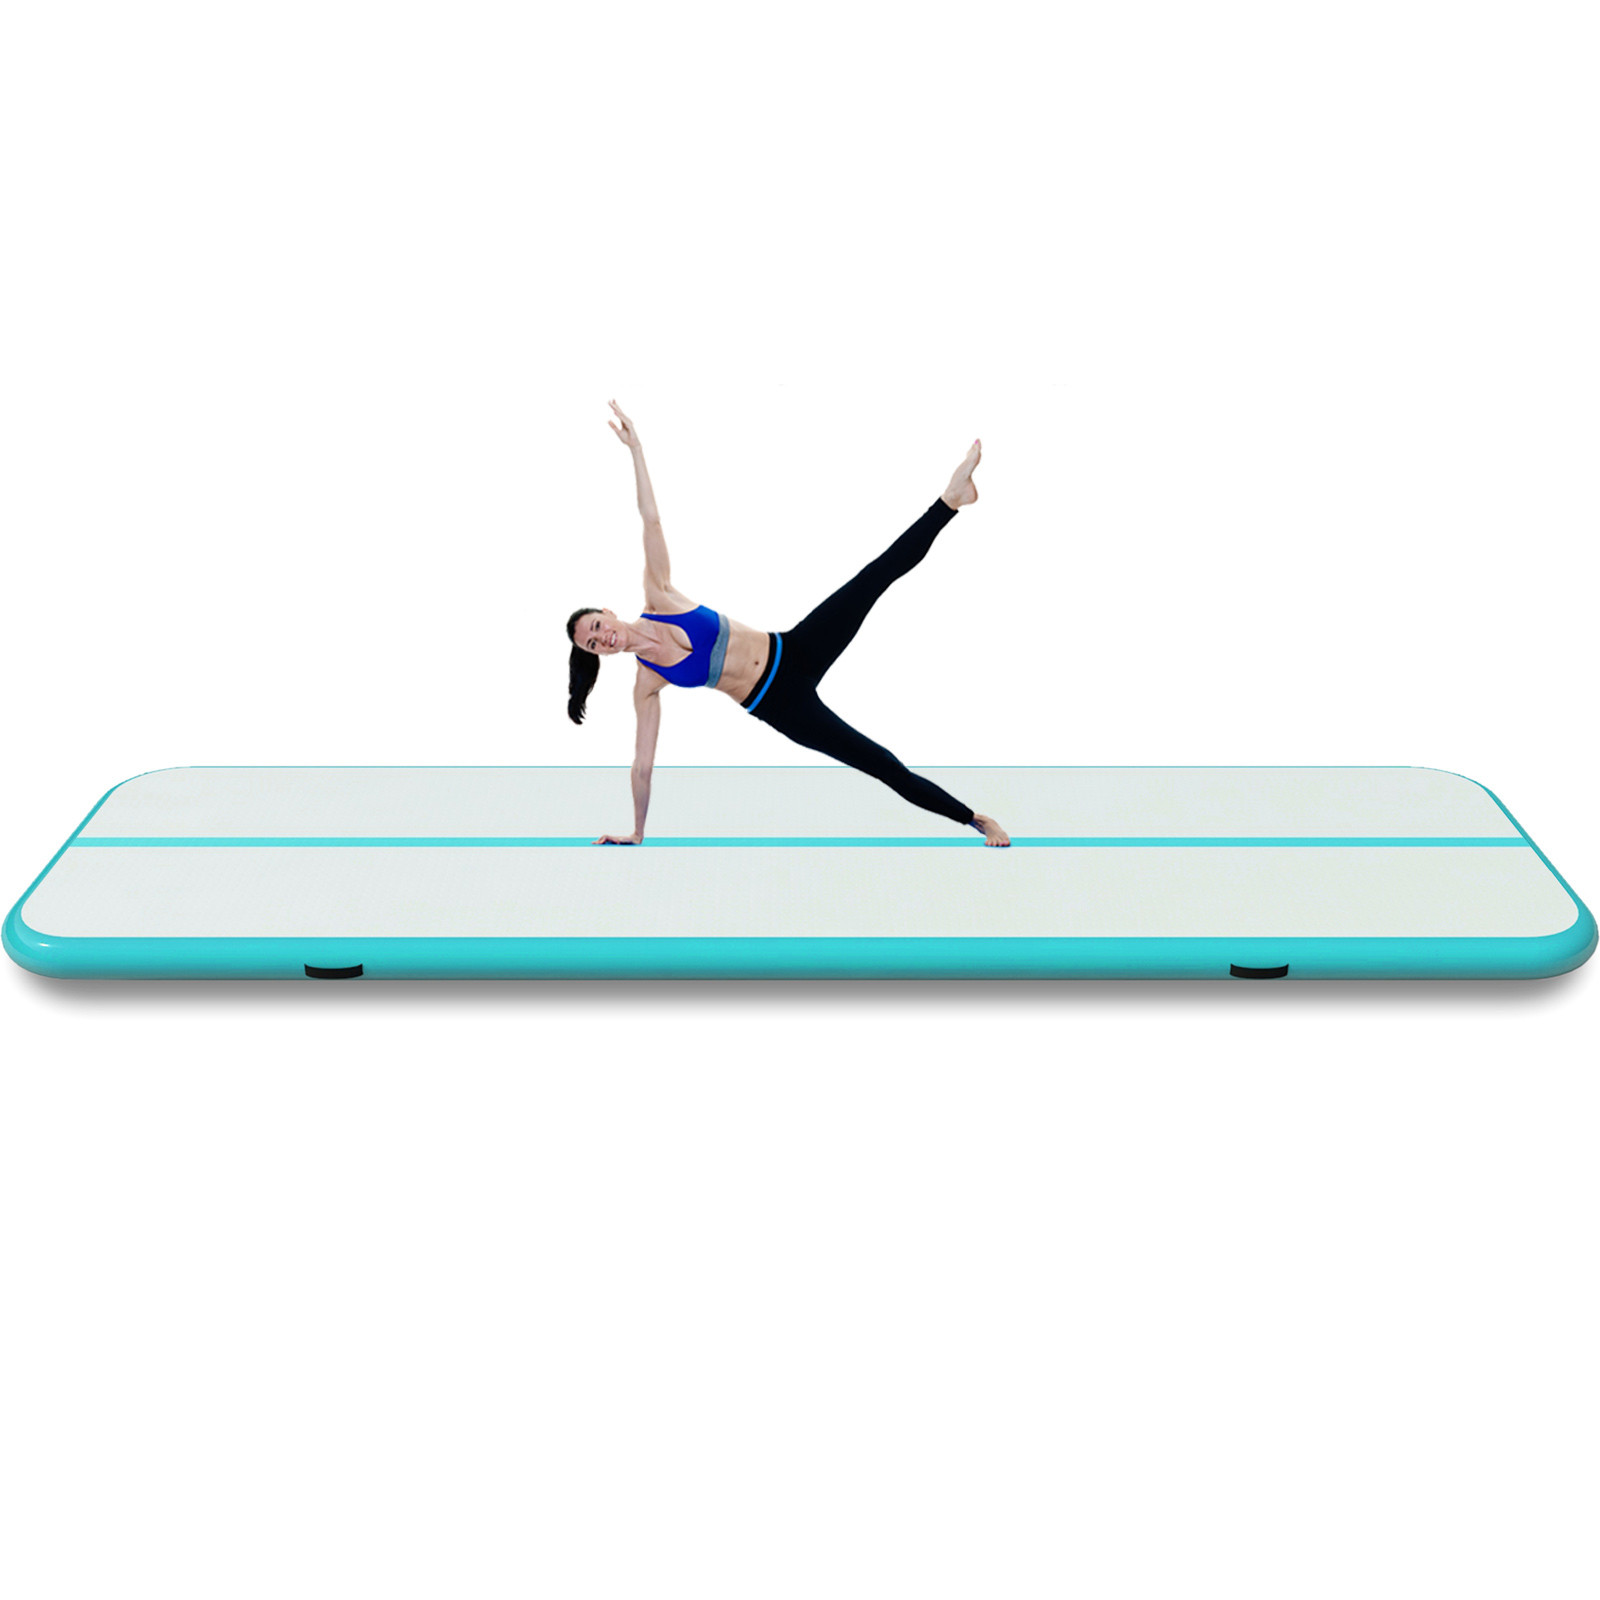 4-12M-Tapis-de-Gymnastique-Gonflable-Yoga-Fitness-Tapis-de-Tumbling-Airtrack miniature 70